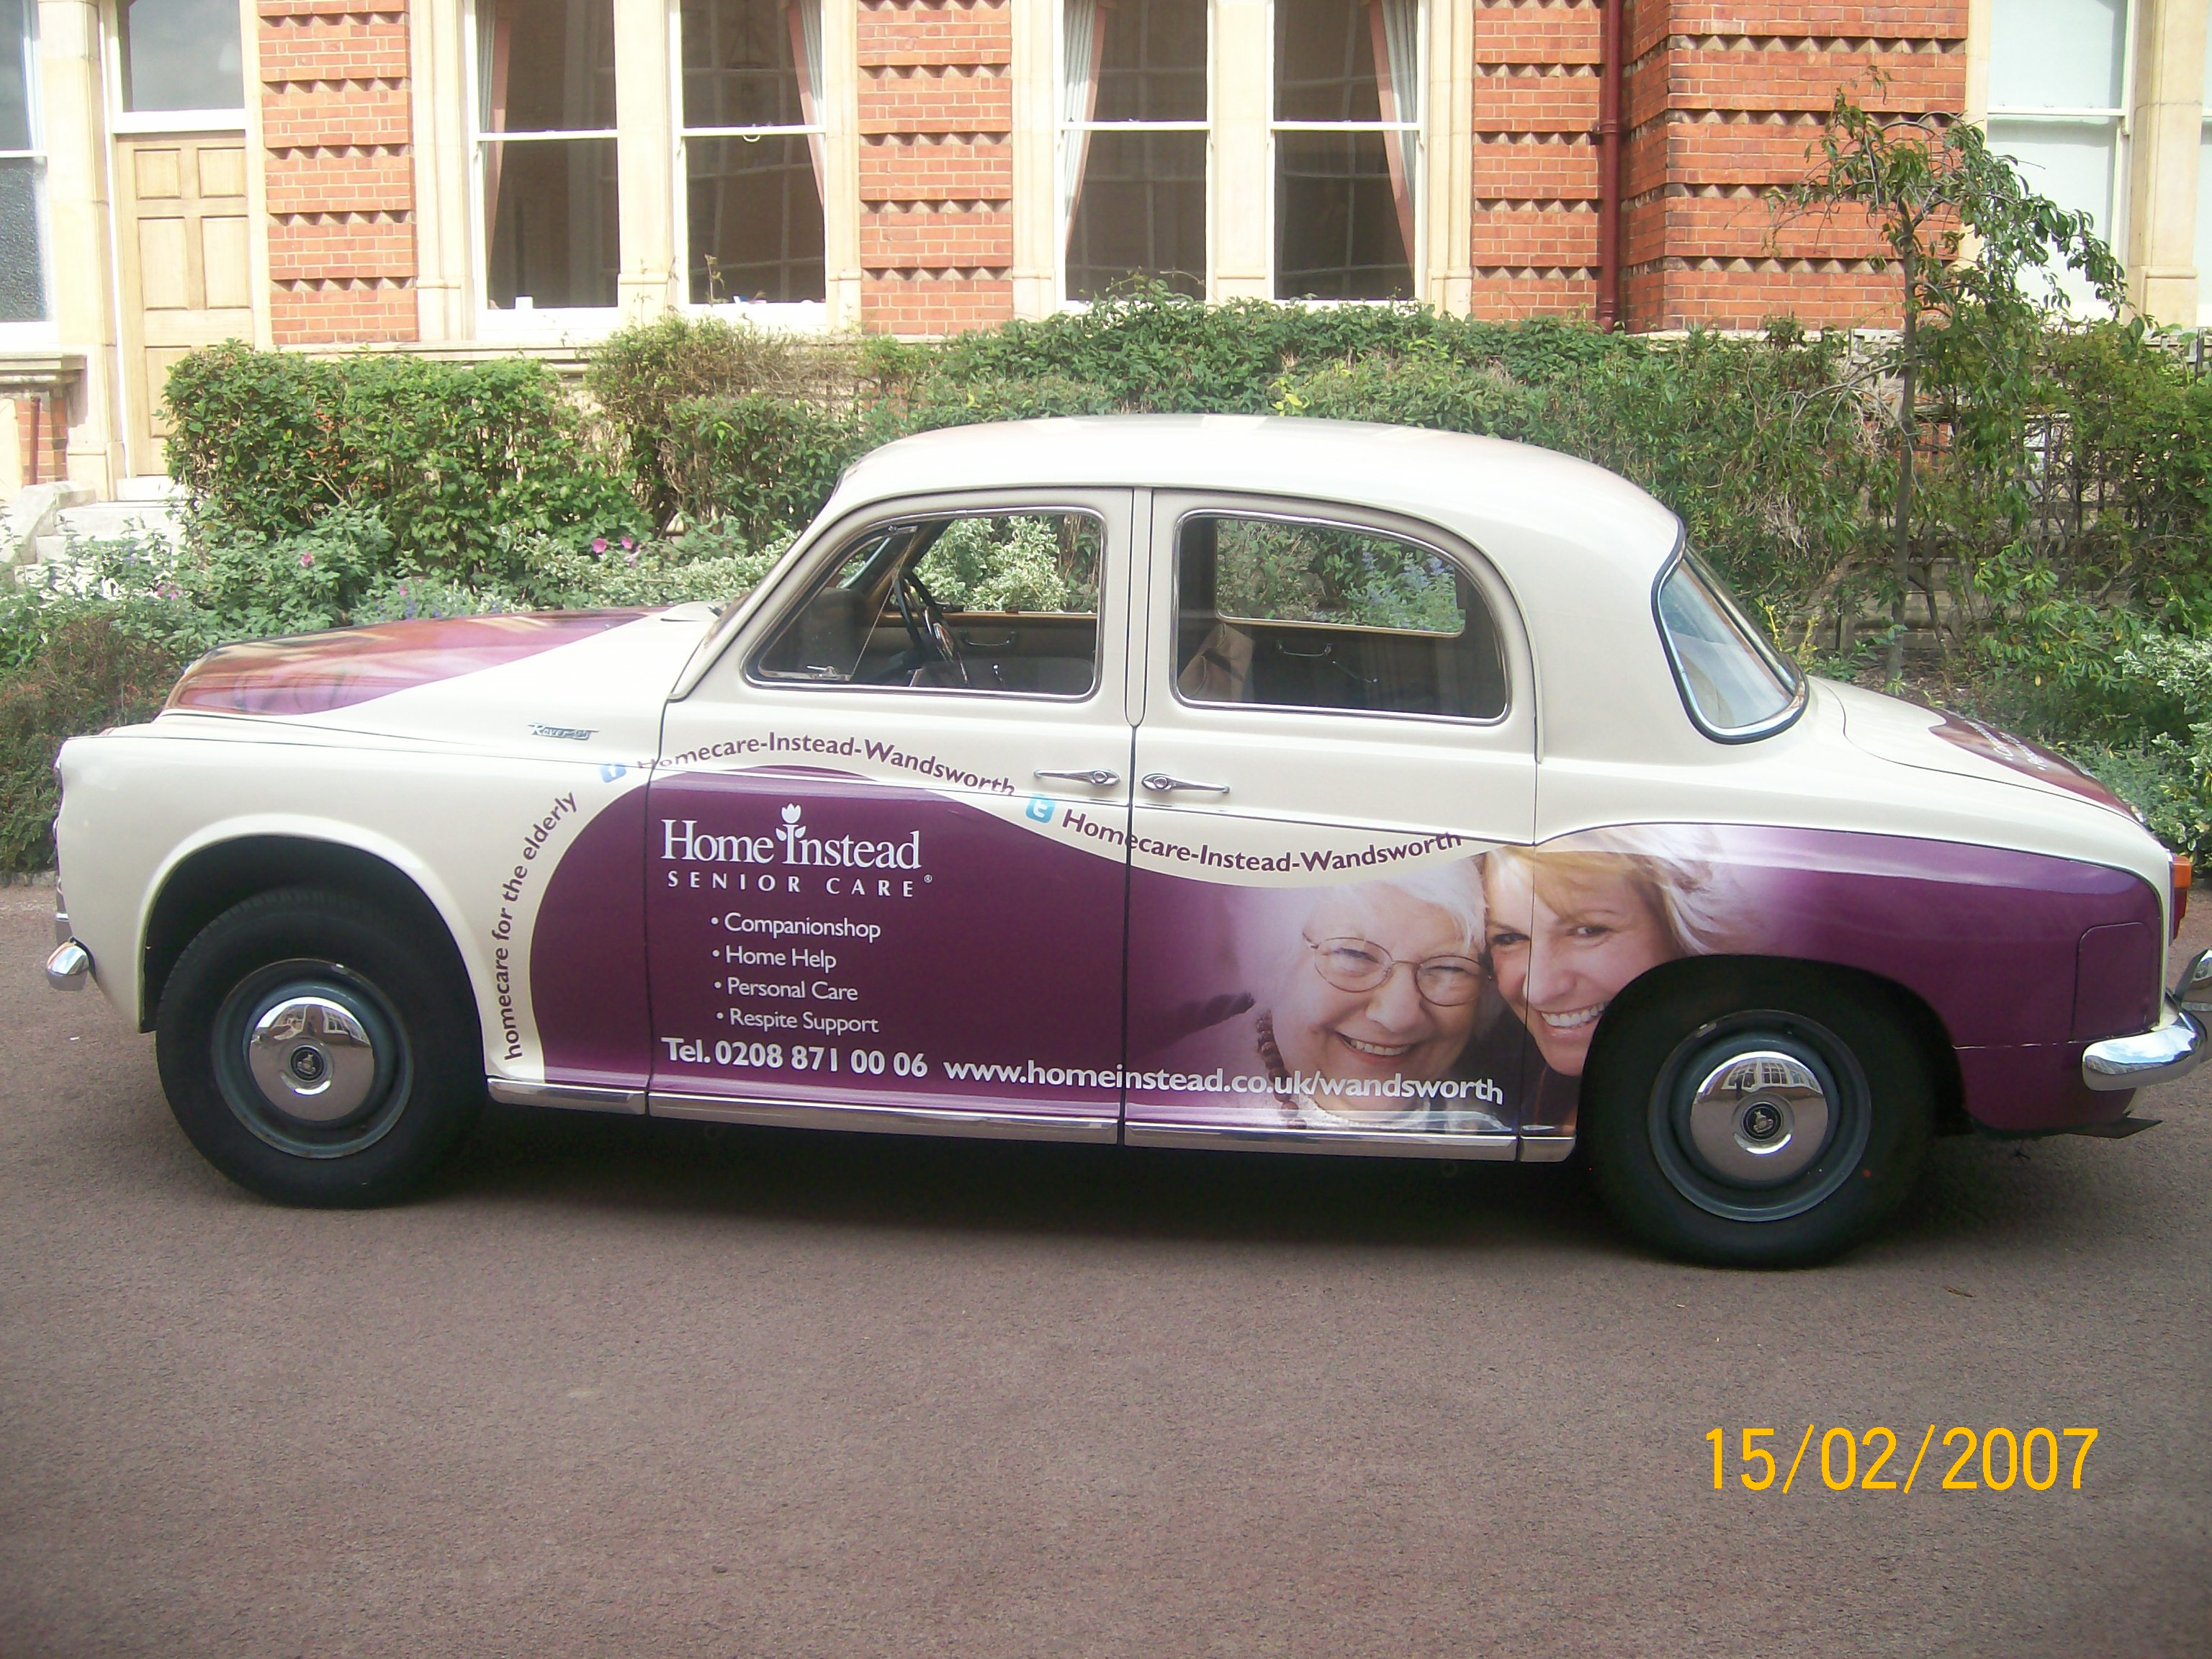 Home Instead Wandsworth car after the makeover in 2007